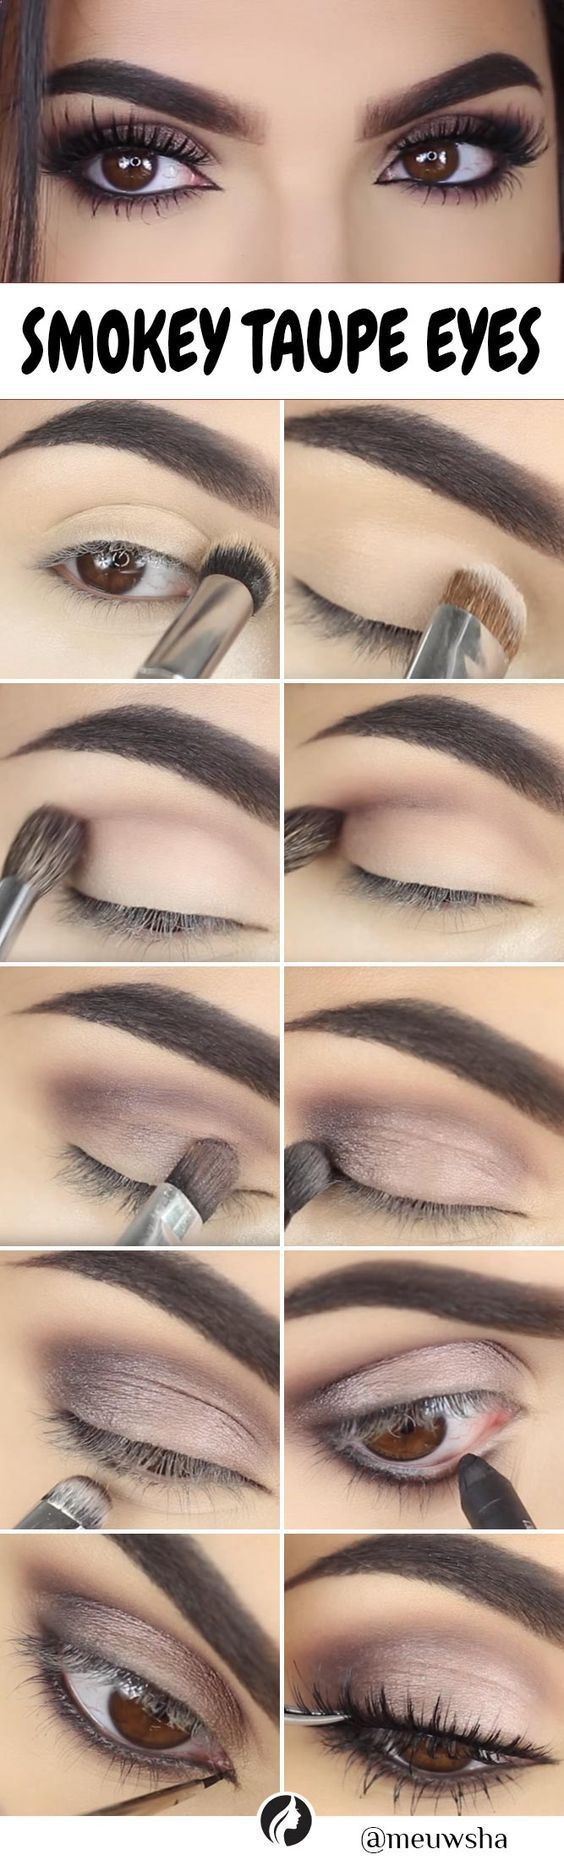 The Ultimate Step-By-Step Tutorial for Perfect Makeup Application. Start with a clean slate! Make sure your face is fresh and moisturized before putting any product on it. Then, apply primer with your fingers to ensure your makeup lasts all day. Step 2: Using a duo fiber brush (the kind with white tips!), apply foundation all over the skin and blend it onto the neck. affiliate link